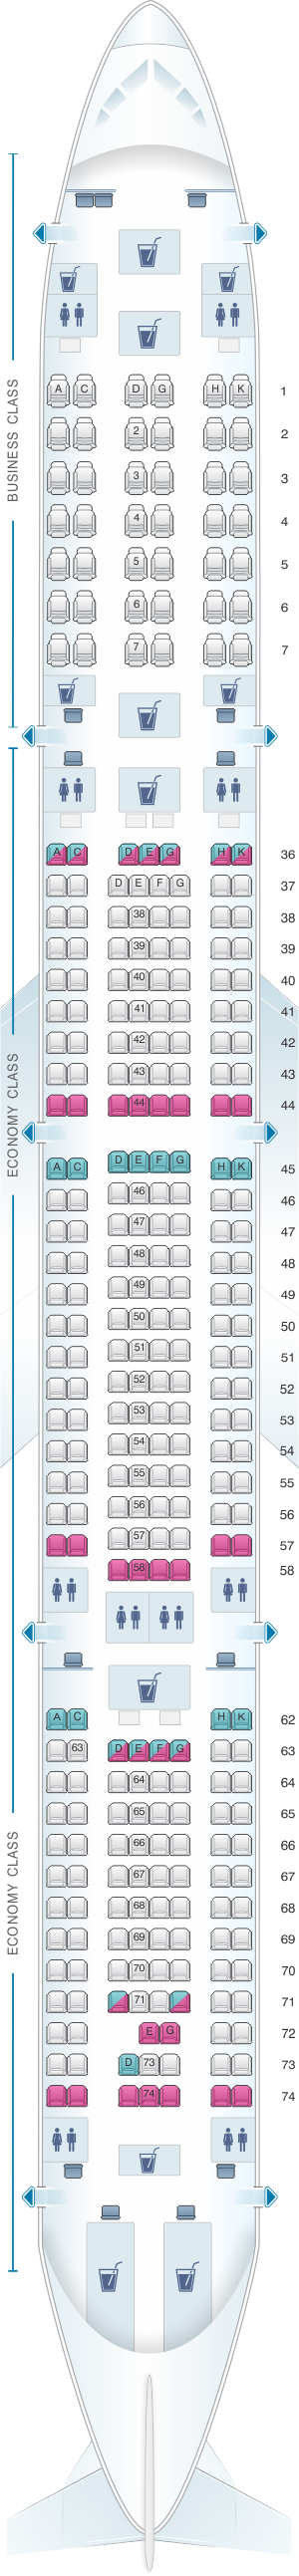 Seat map for South African Airways Airbus A340 600